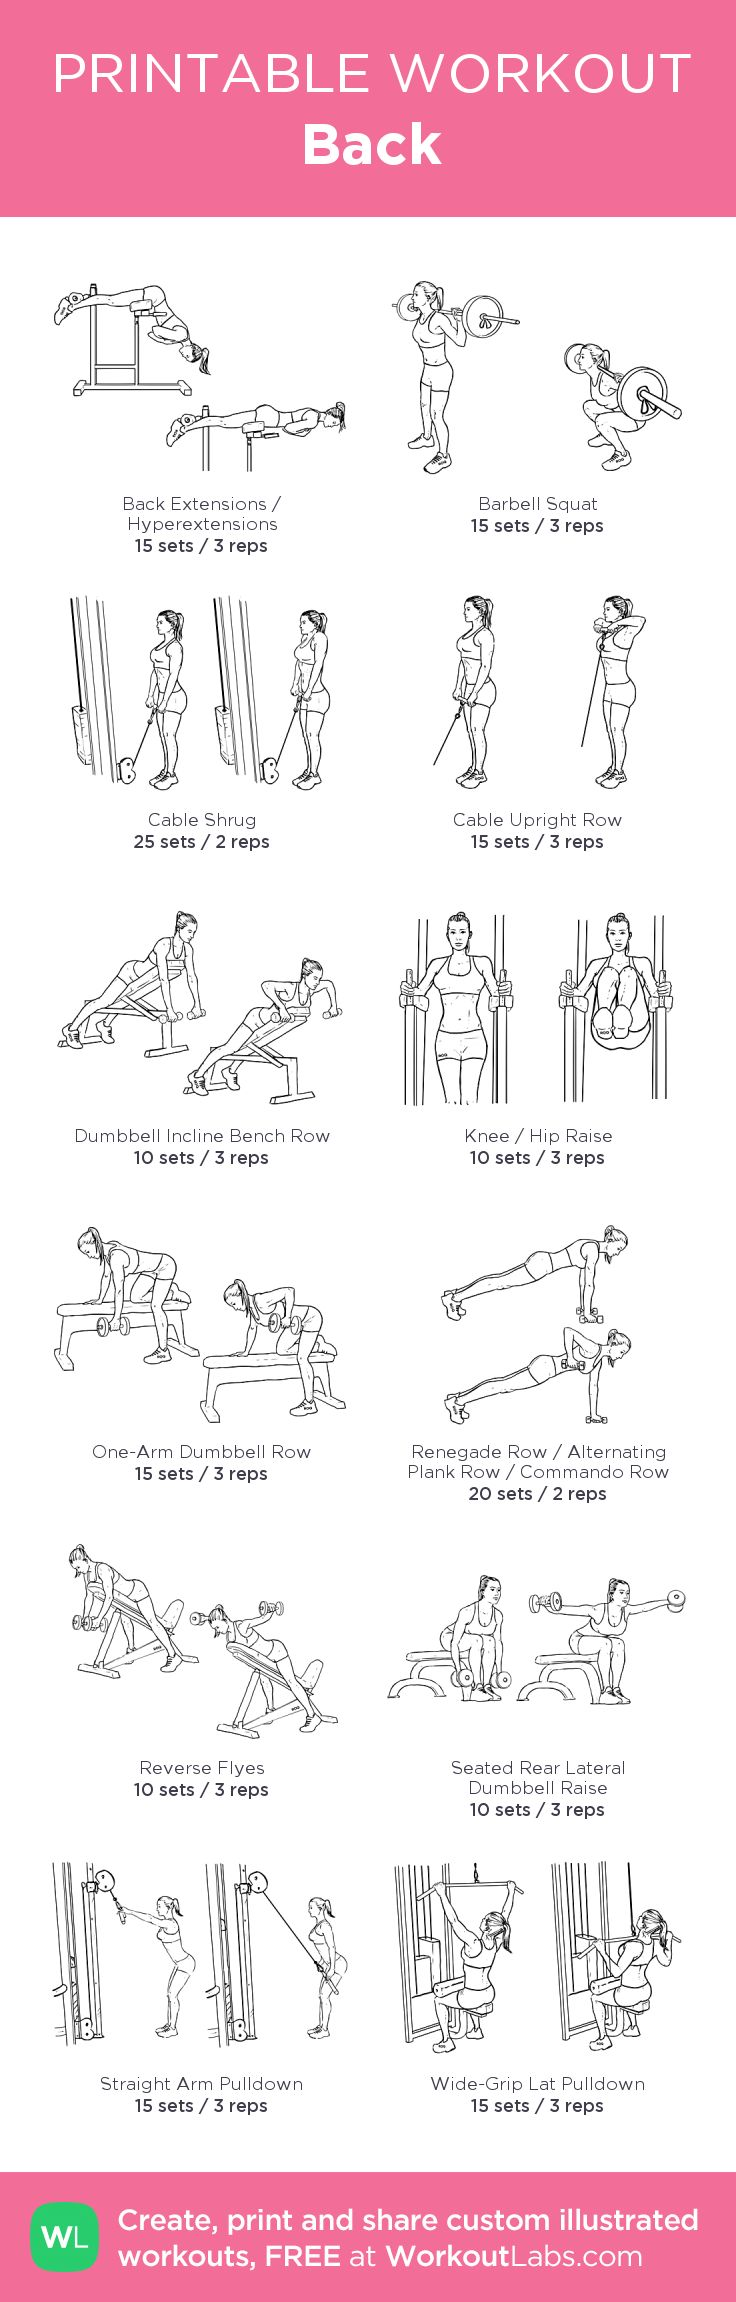 Back:my visual workout created at WorkoutLabs.com • Click through to customize and download as a FREE PDF! #customworkout